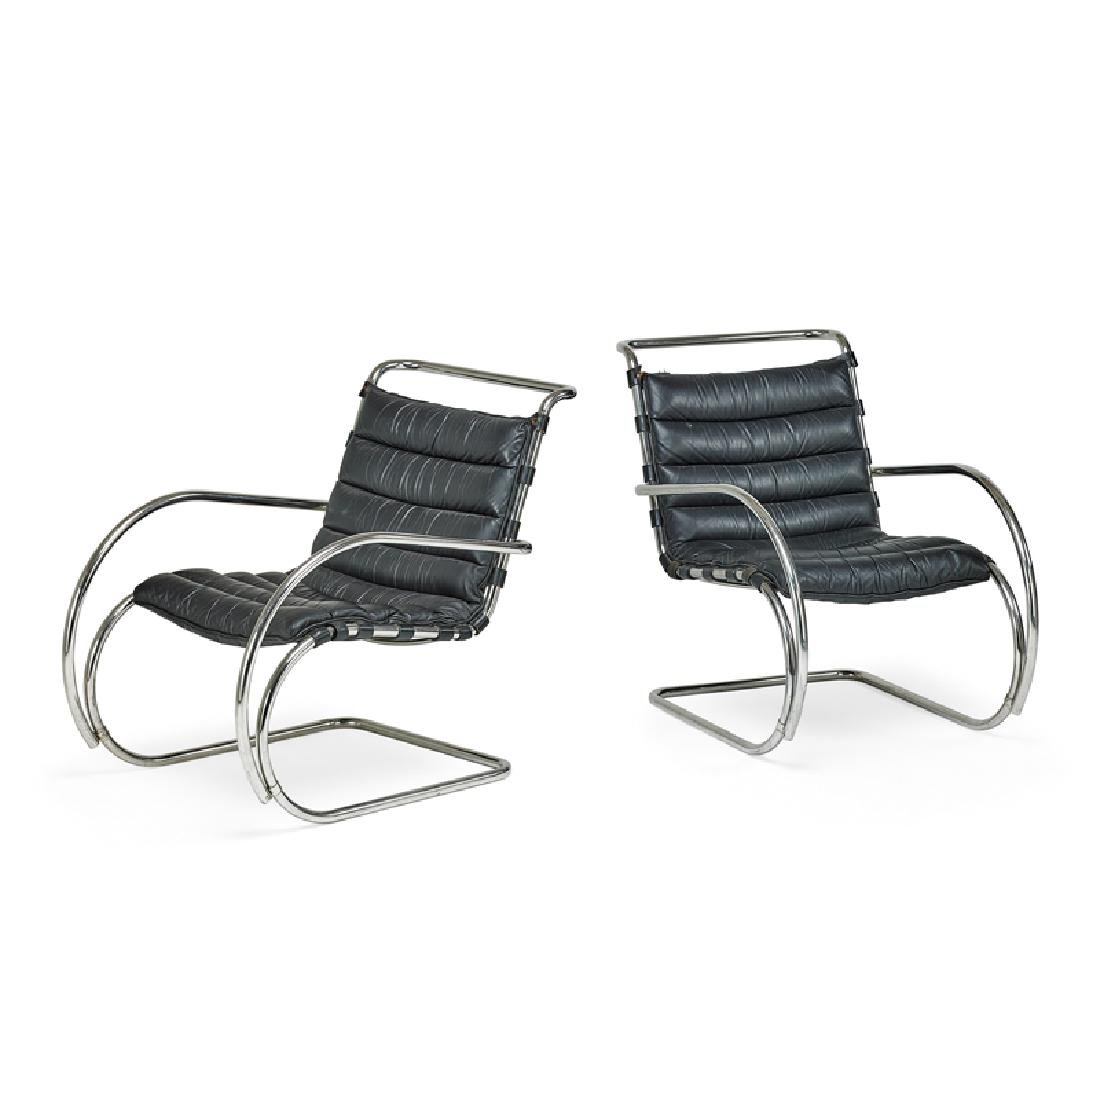 LUDWIG MIES VAN DER ROHE; KNOLL INTERNATIONAL